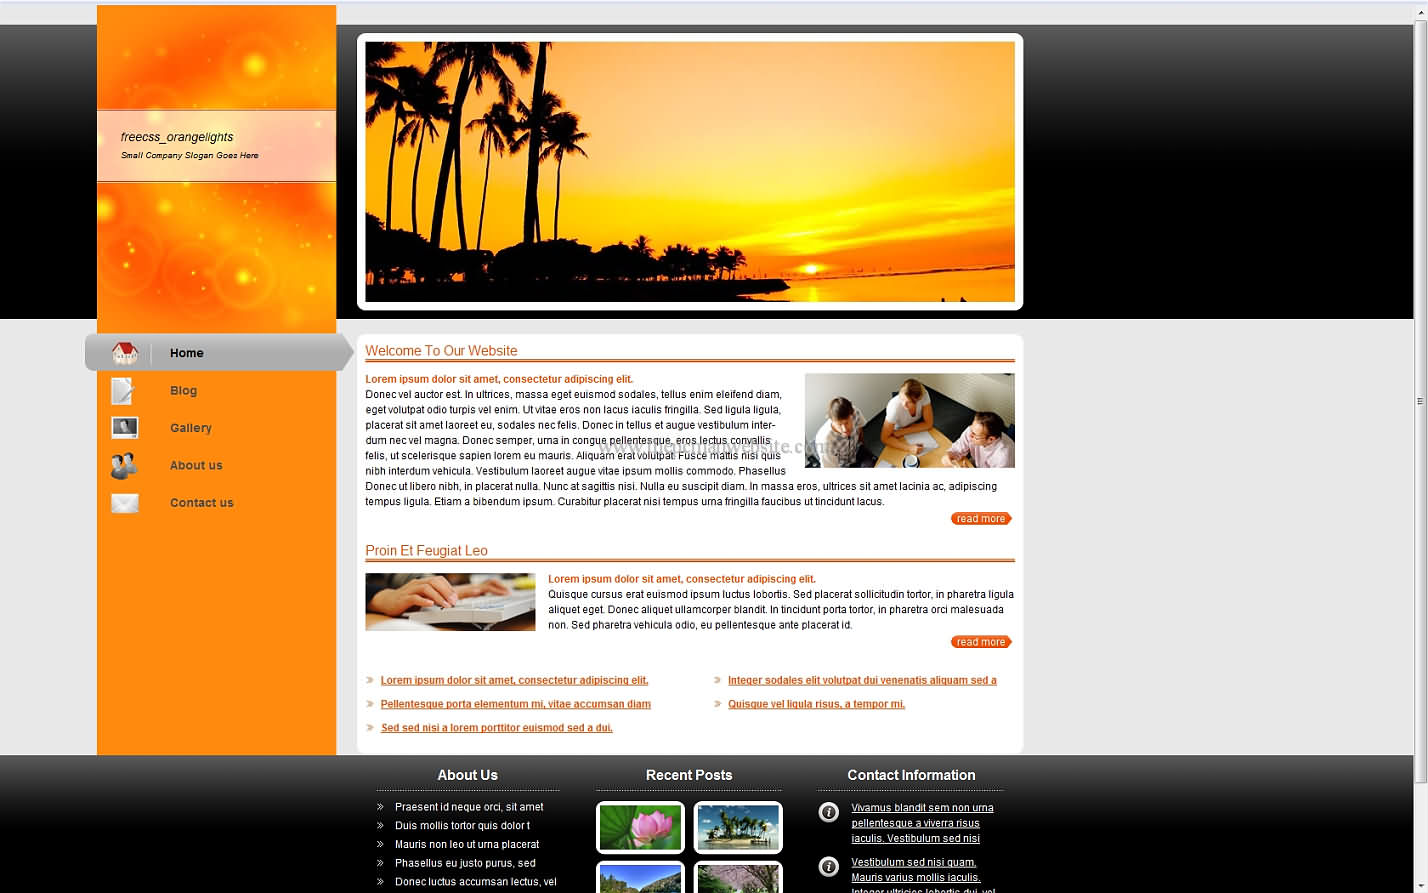 Freecss Orangelights css template